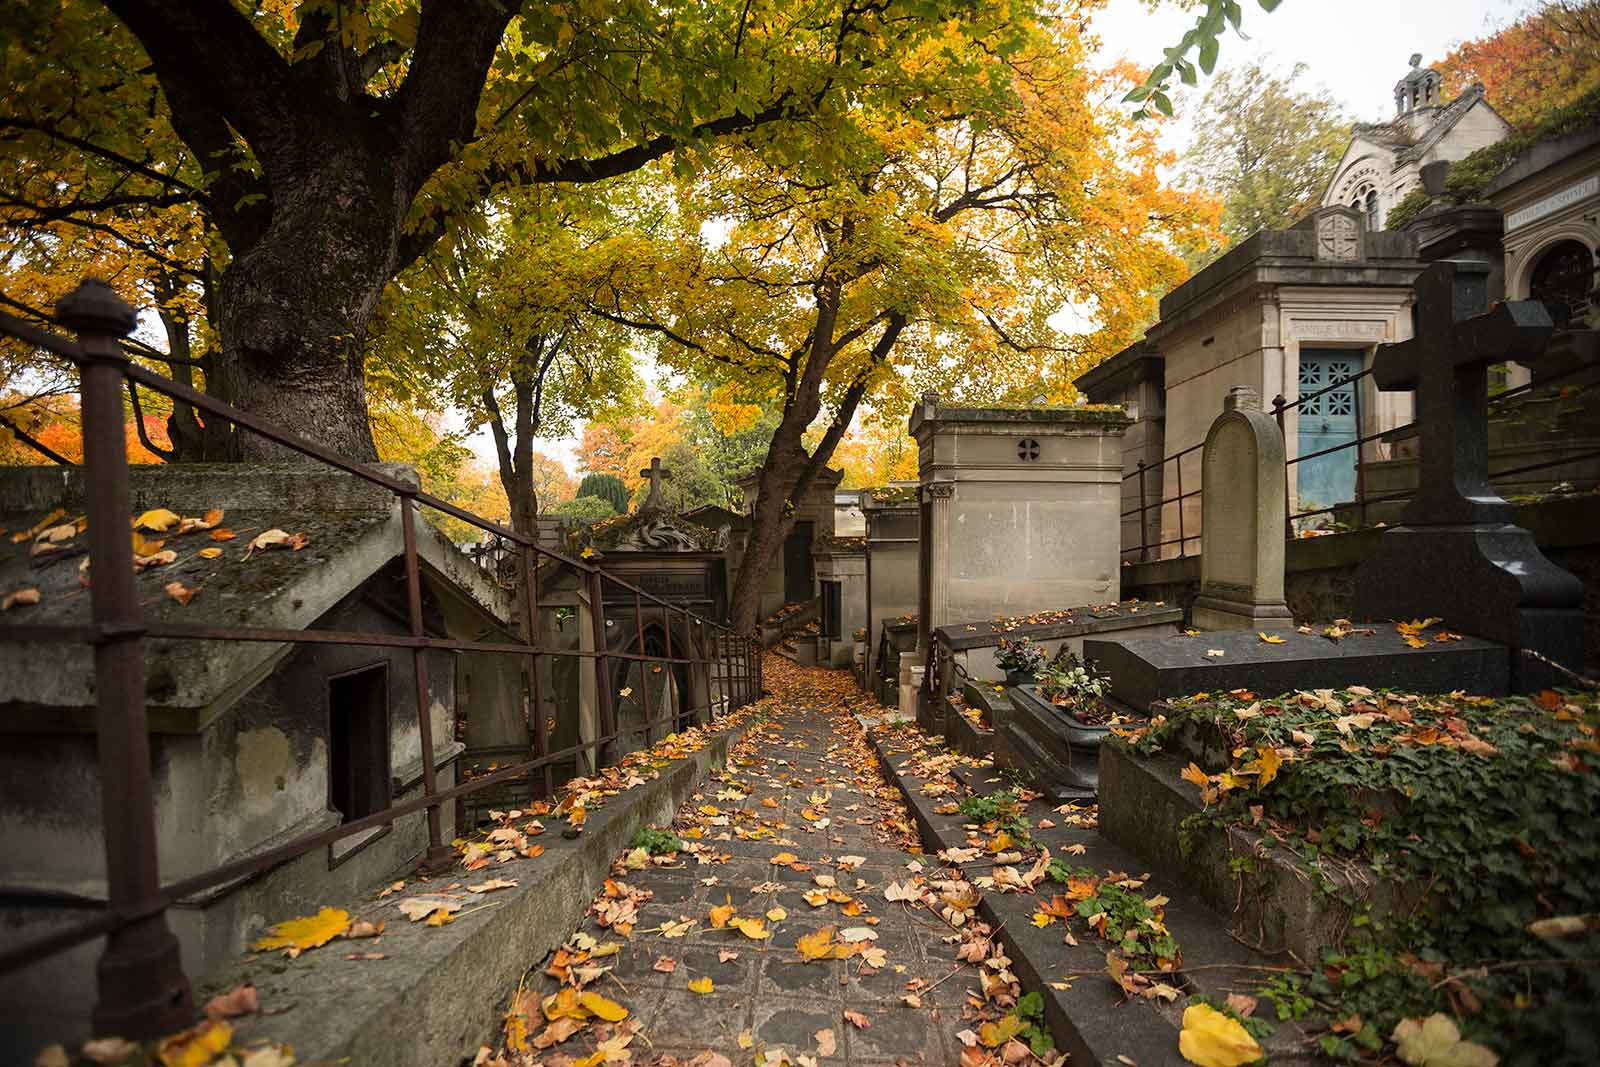 At Père Lachaise cemetery, 70.000 tombs (many of the rich and famous) form a verdant, 44-hectare sculpture garden.